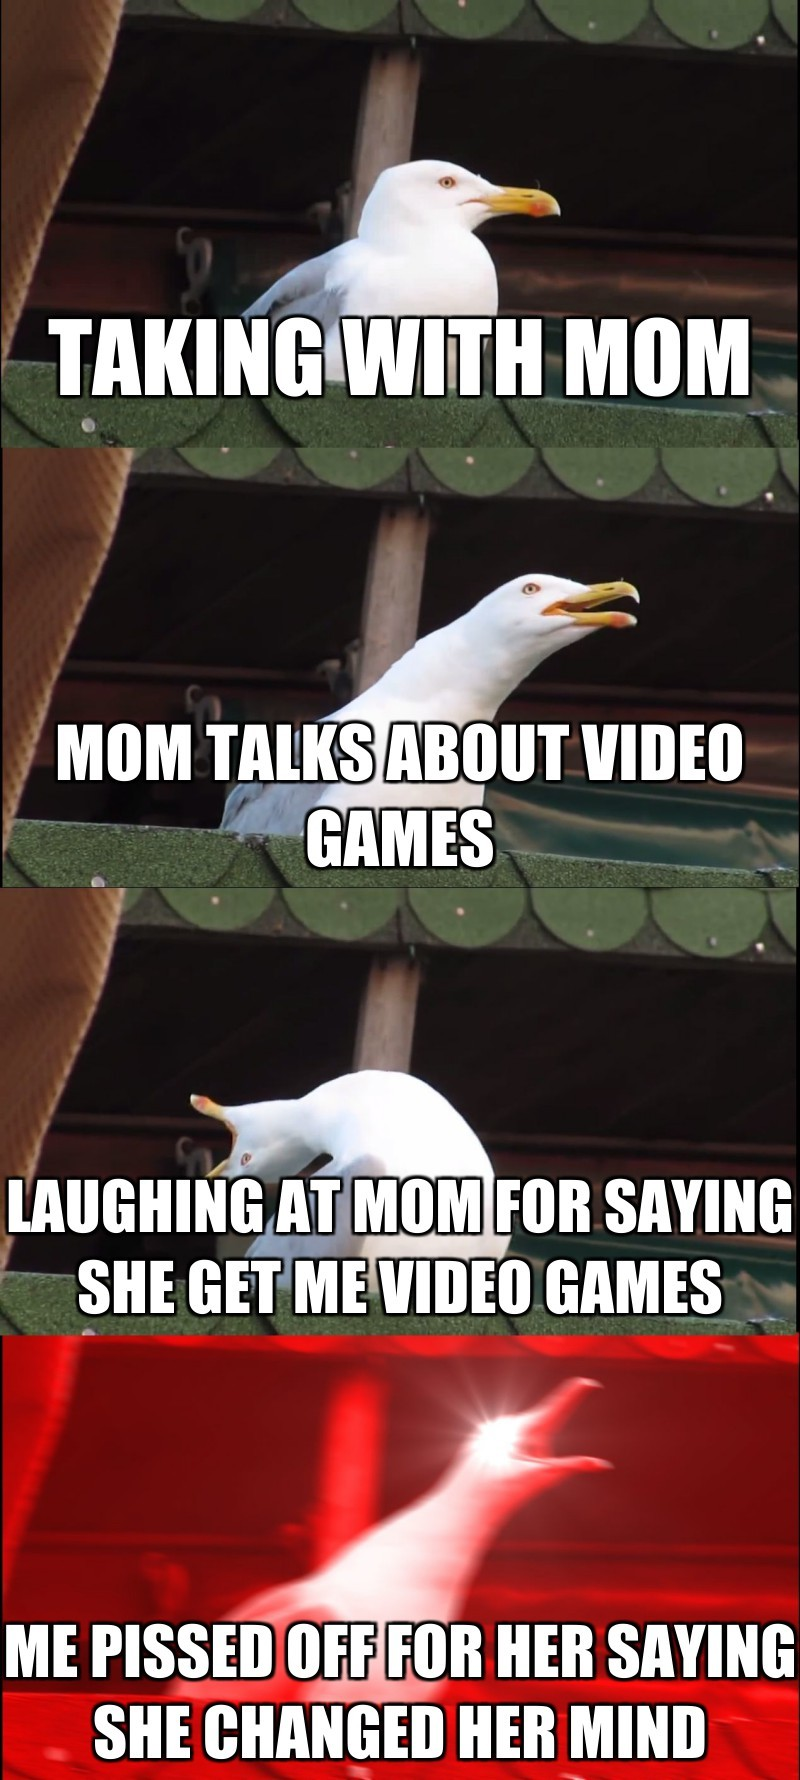 taking with mom; mom talks about video games; laughing at mom for saying she get me video games; me pissed off for her saying she changed her mind